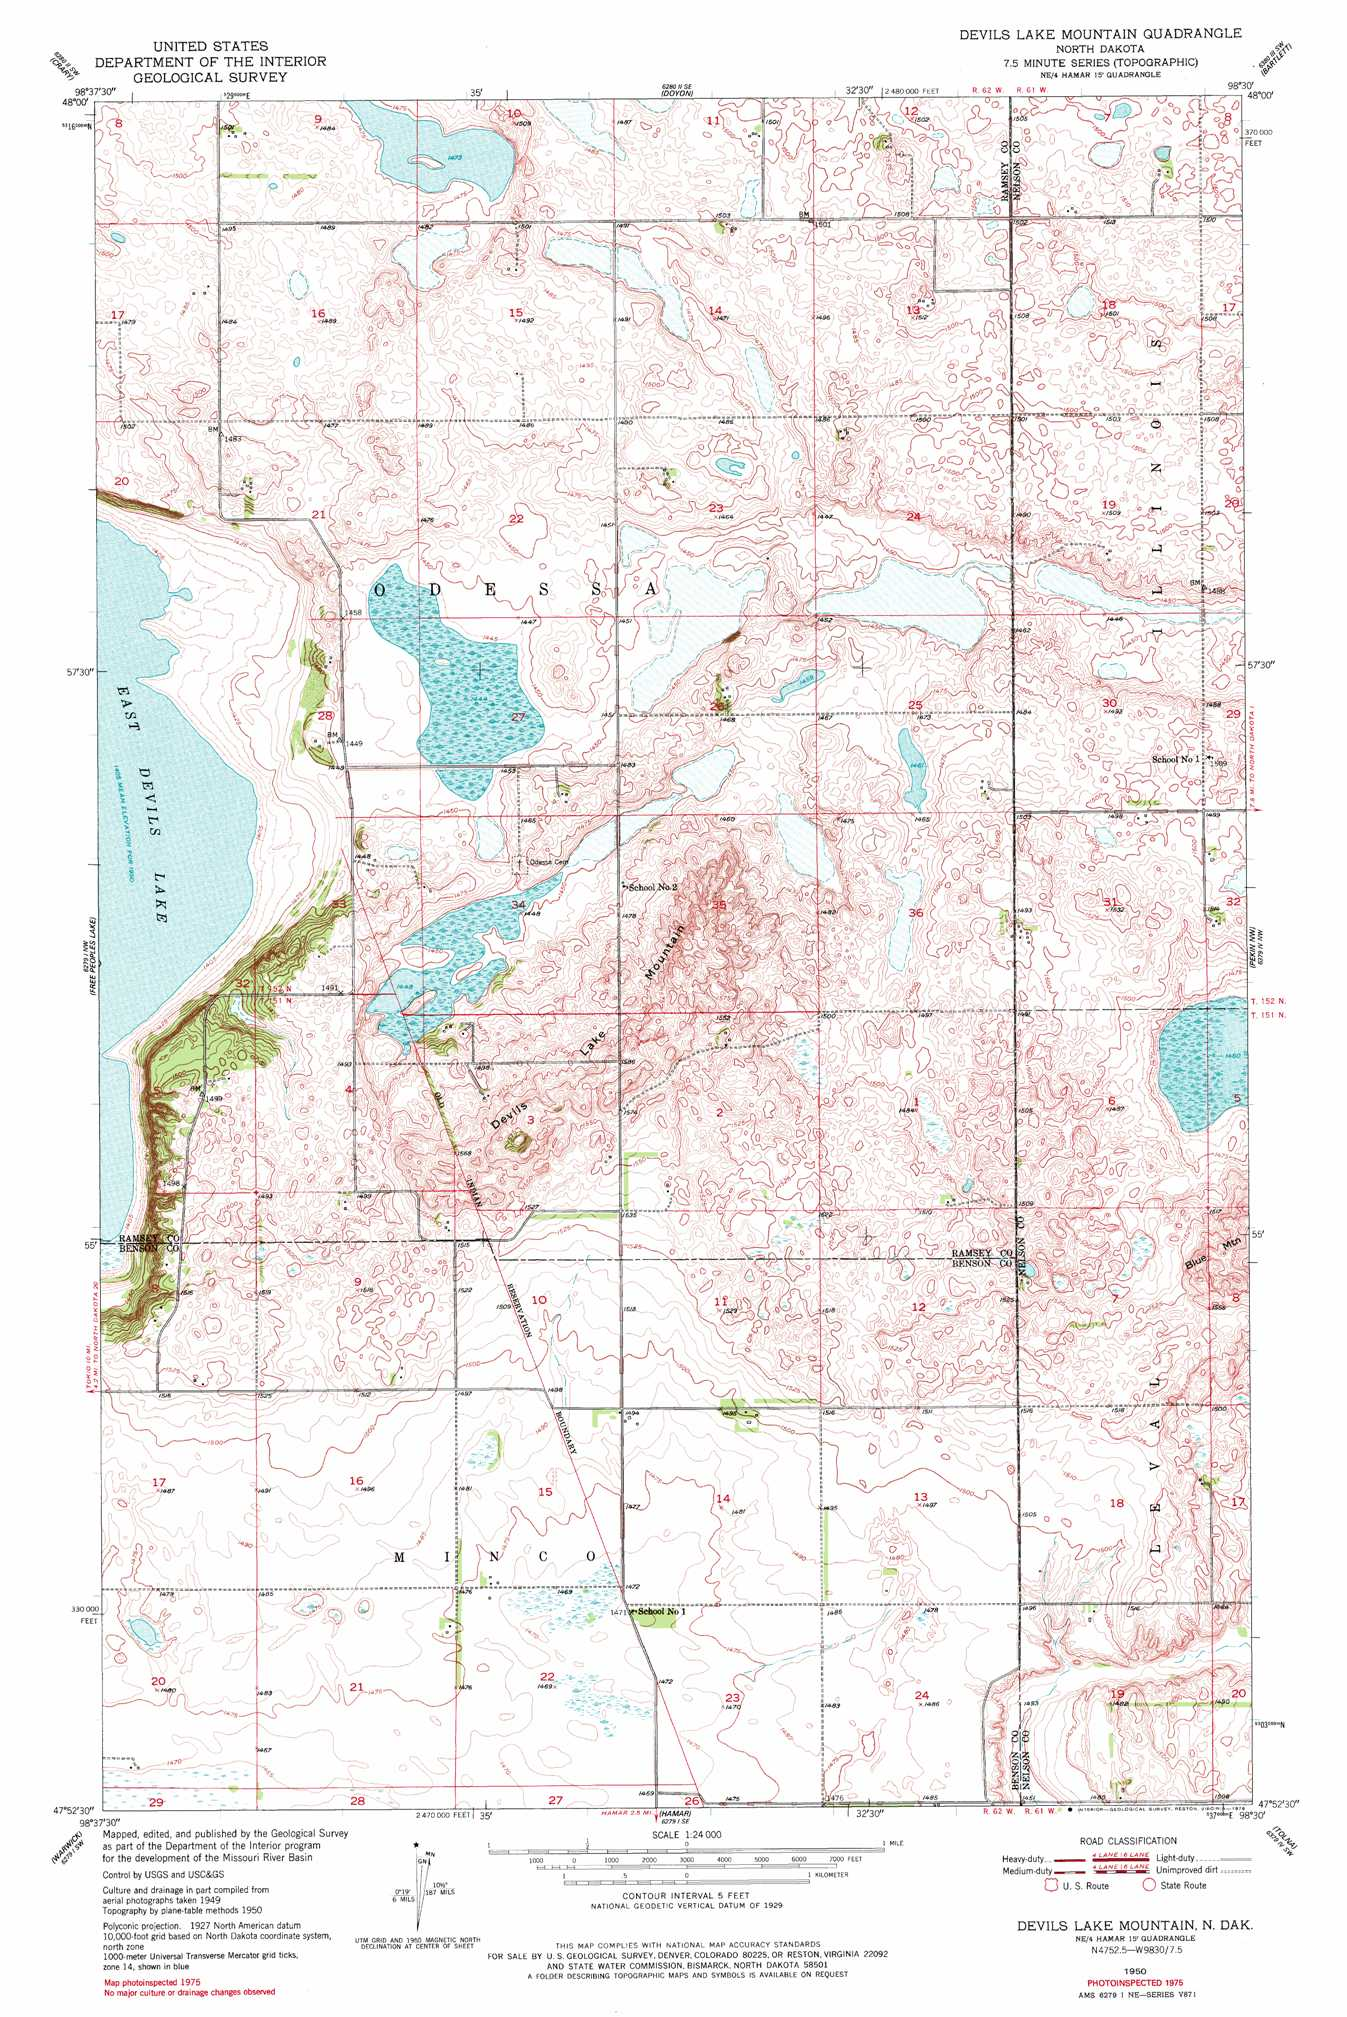 Devils Lake Mountain topographic map ND USGS Topo Quad 47098h5